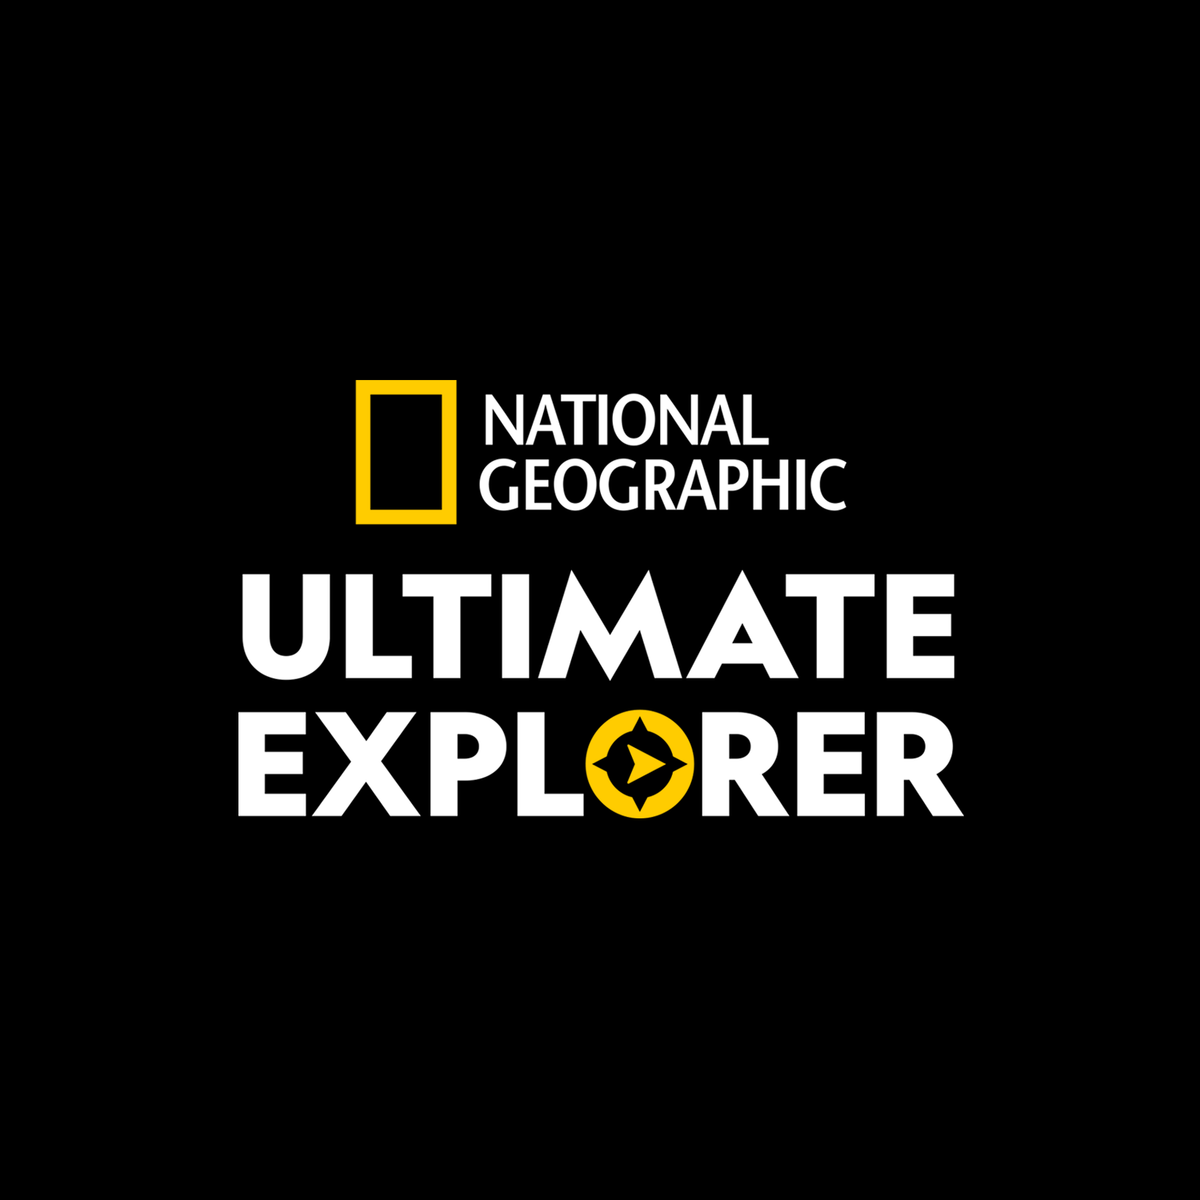 Link para acceder a National Geographic